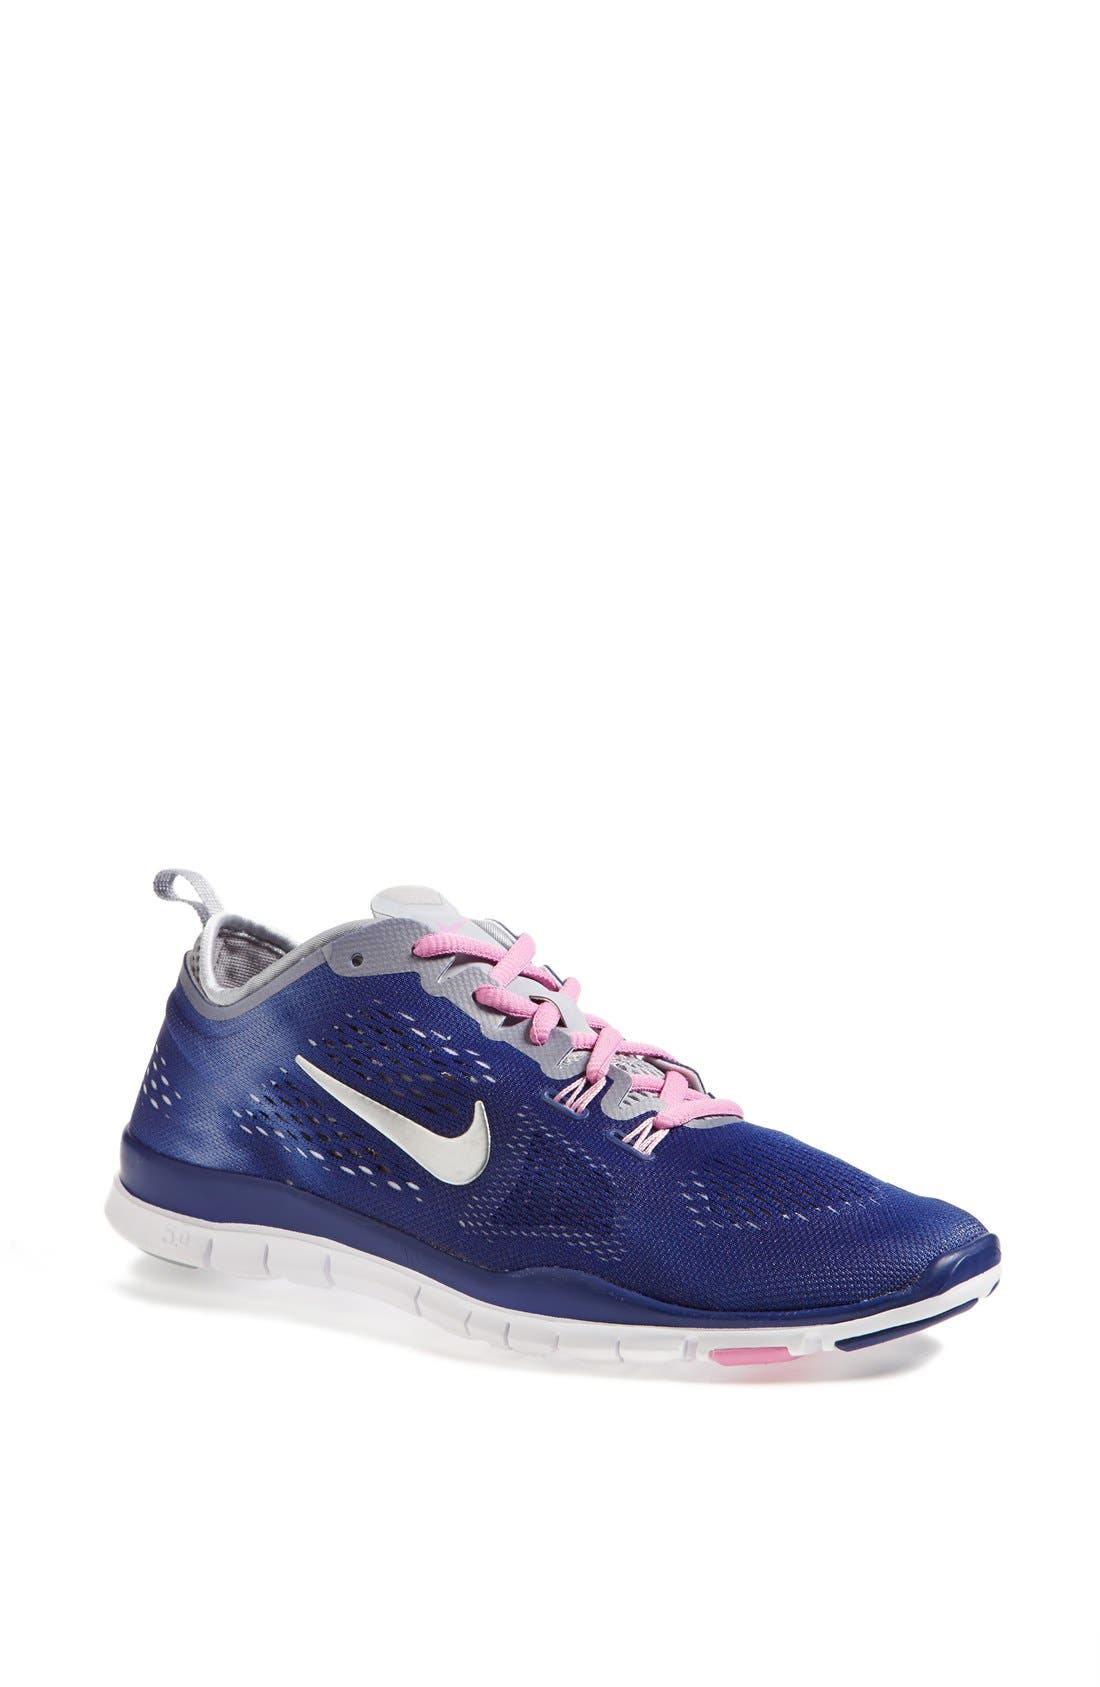 Alternate Image 1 Selected - Nike 'Free 5.0 Fit' Tie Dye Training Shoe (Women)